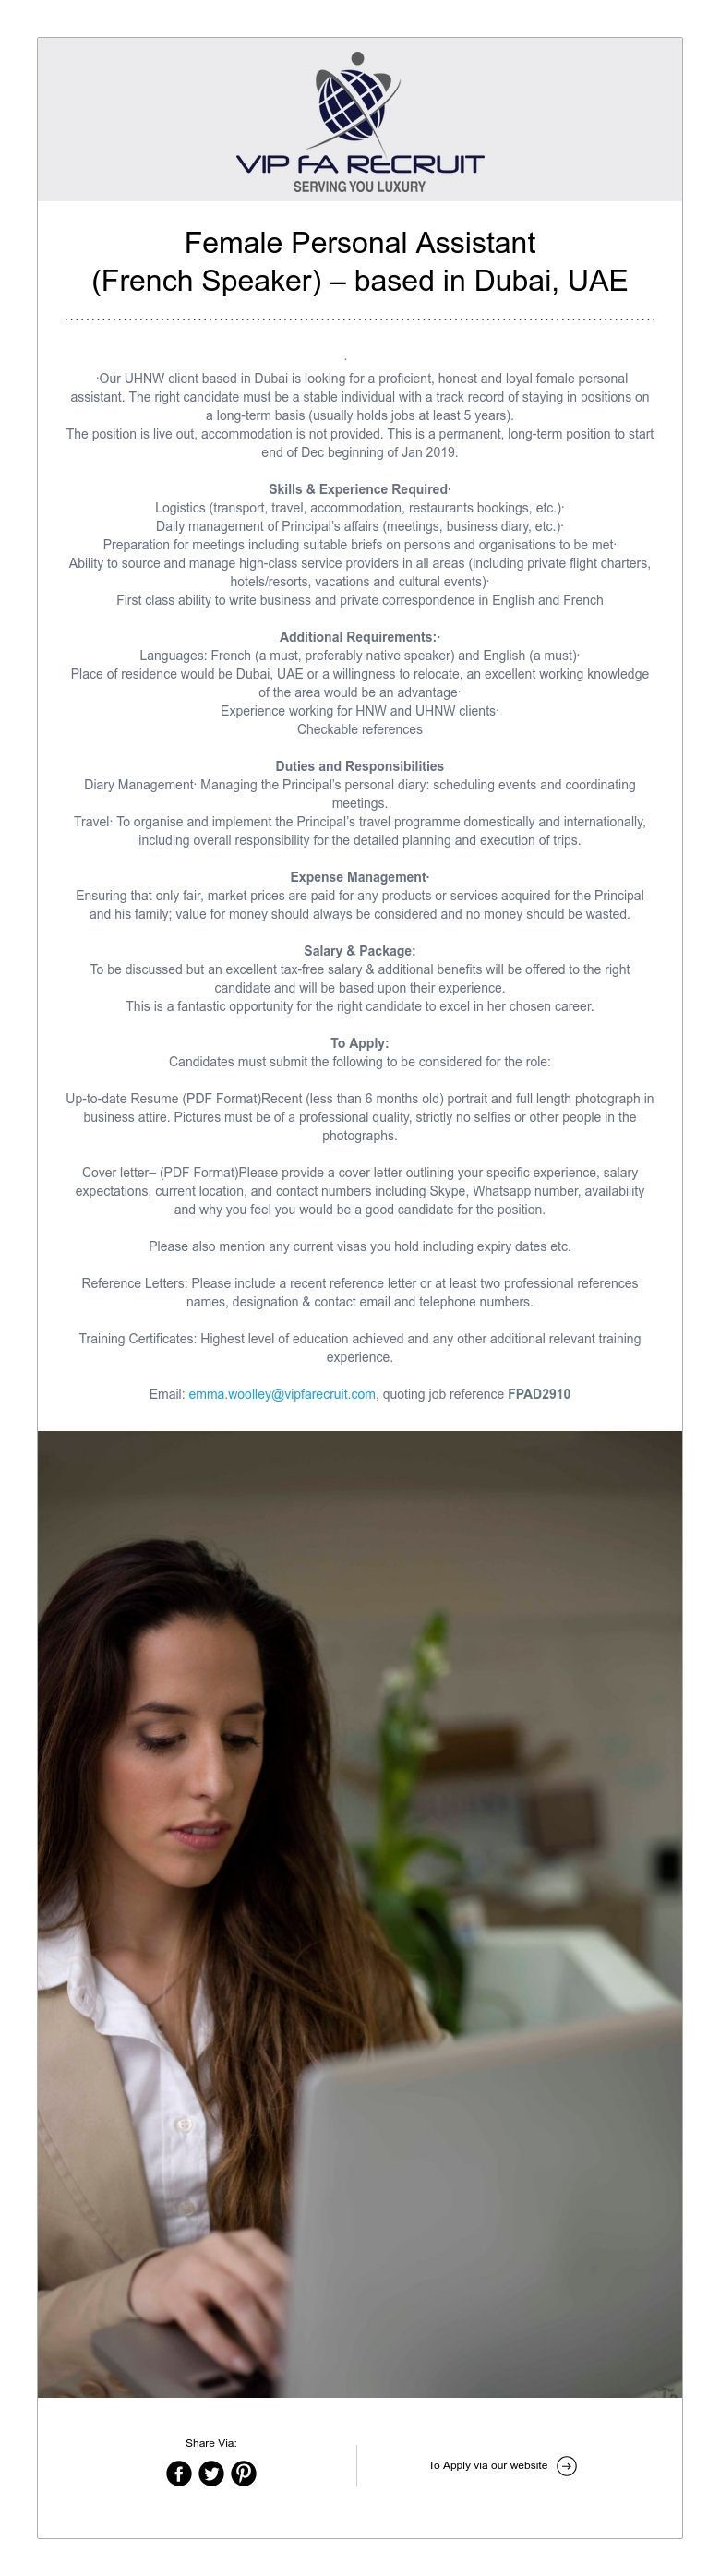 Female Personal Assistant (French Speaker) based in